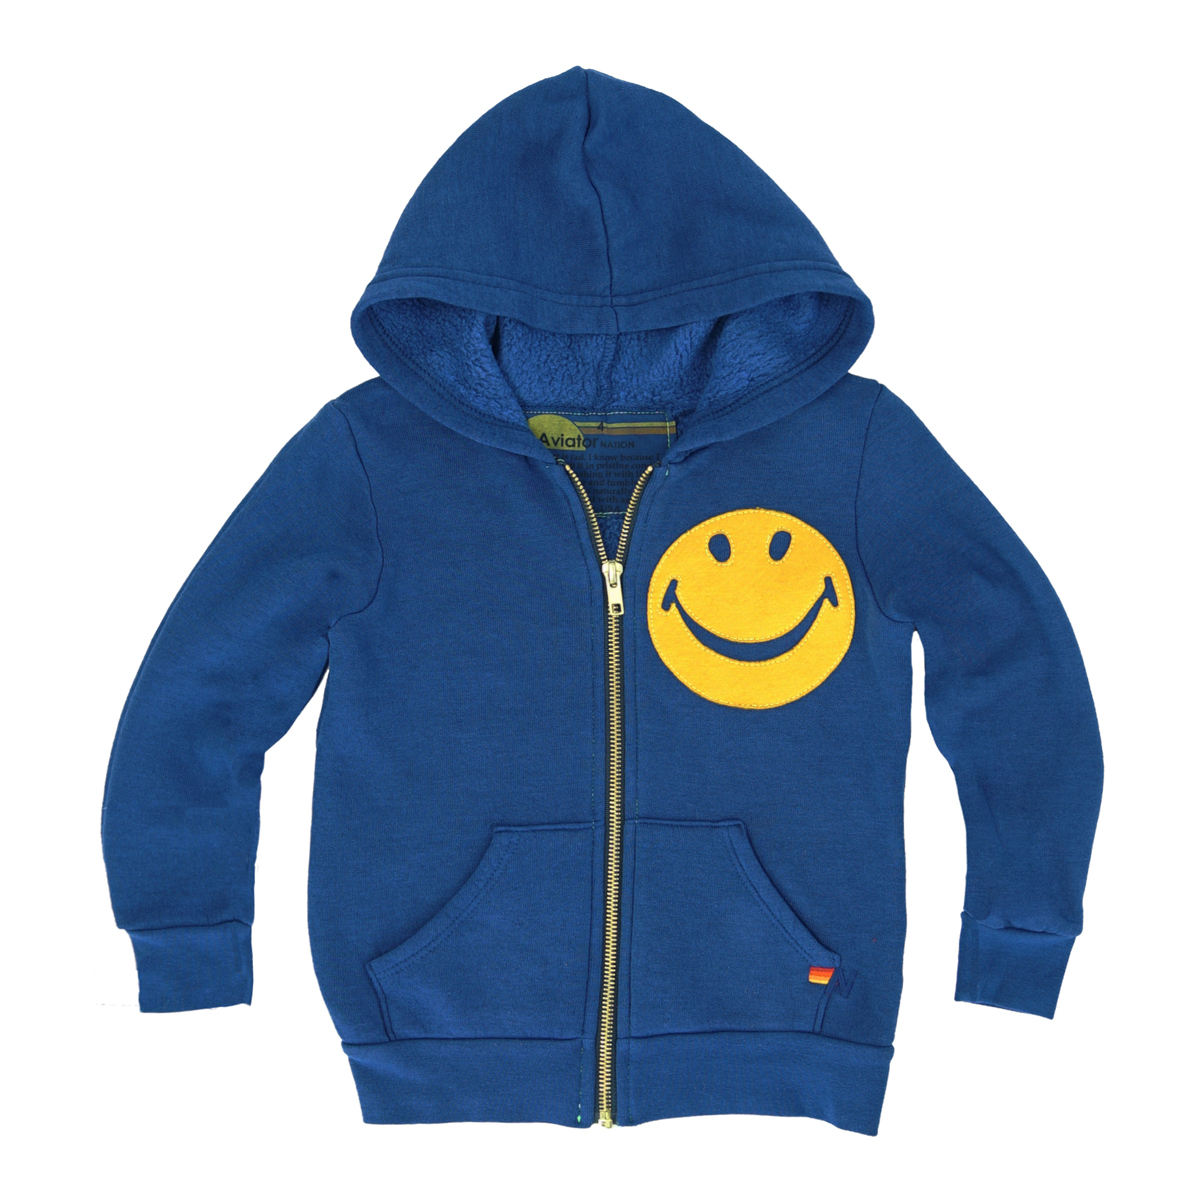 Aviator Nation Smiley Zip Hoodie in Royal Blue